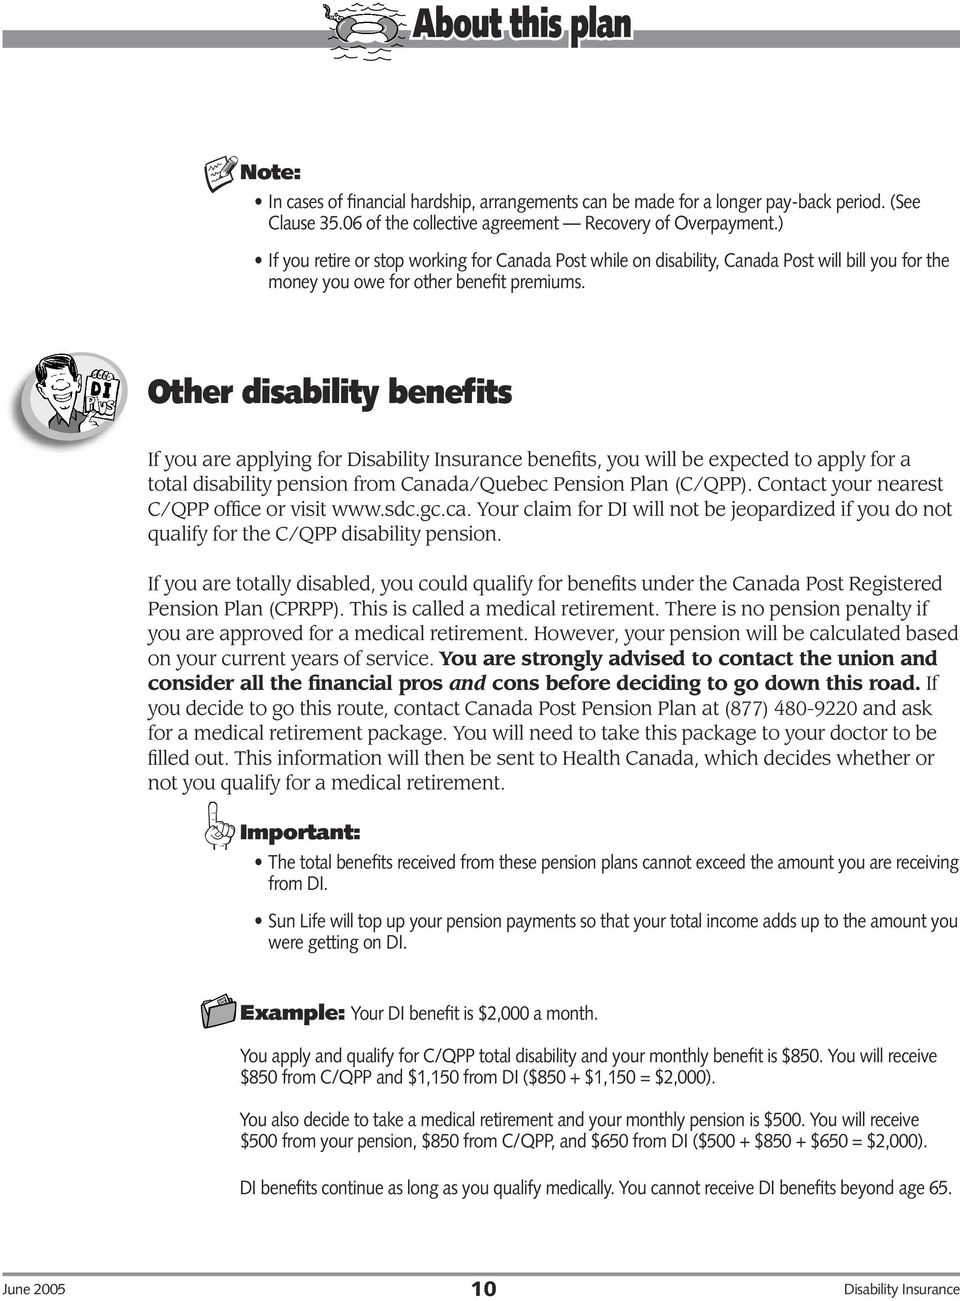 Other disability benefits If you are applying for Disability Insurance benefits, you will be expected to apply for a total disability pension from Canada/Quebec Pension Plan (C/QPP).